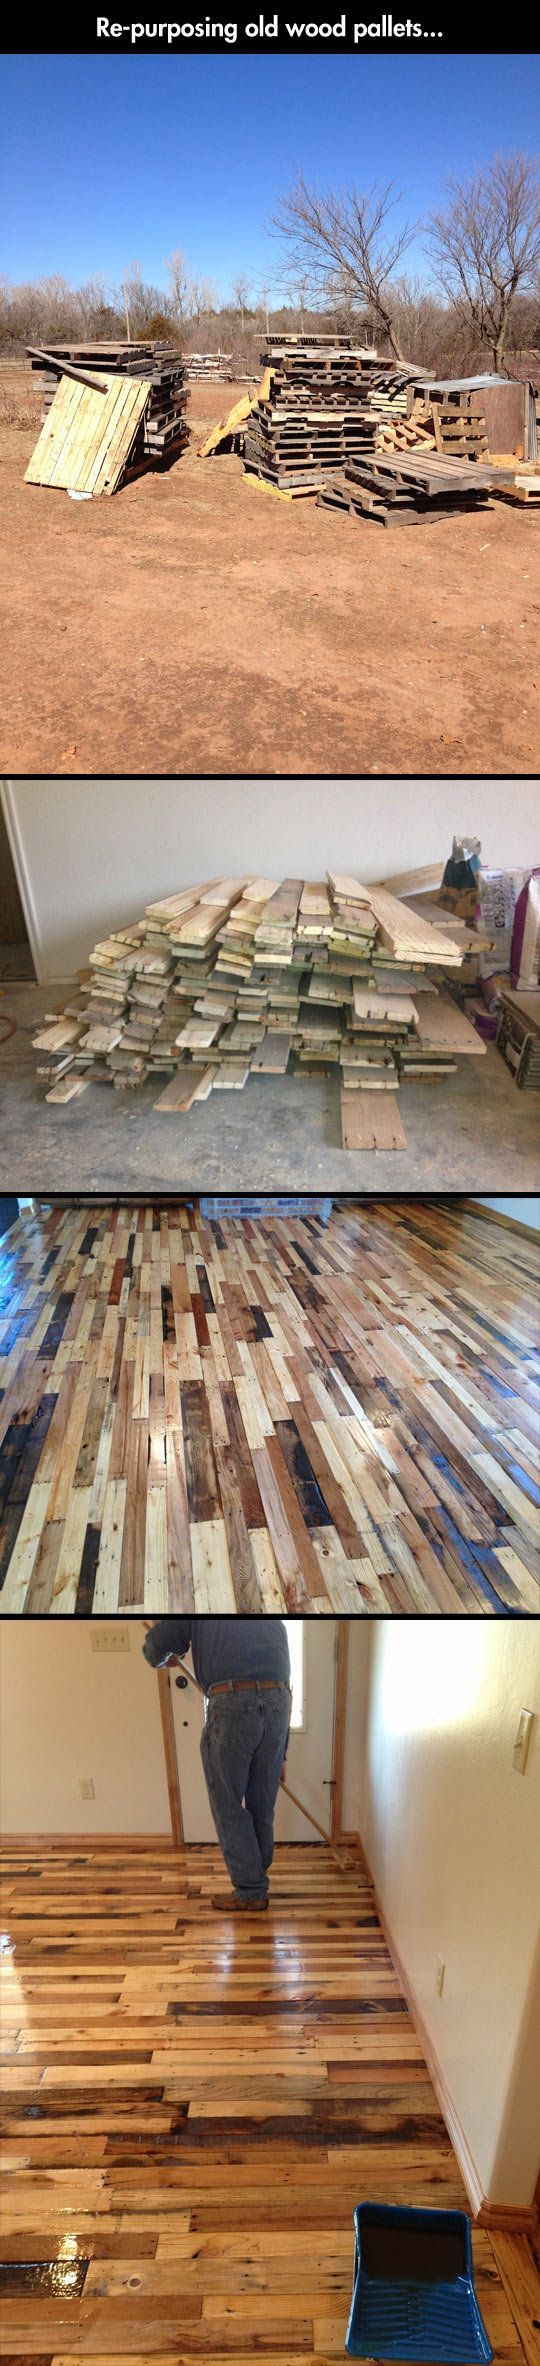 373 best pallet flooring images on pinterest pallet ideas 373 best pallet flooring images on pinterest pallet ideas pallet wood and wood